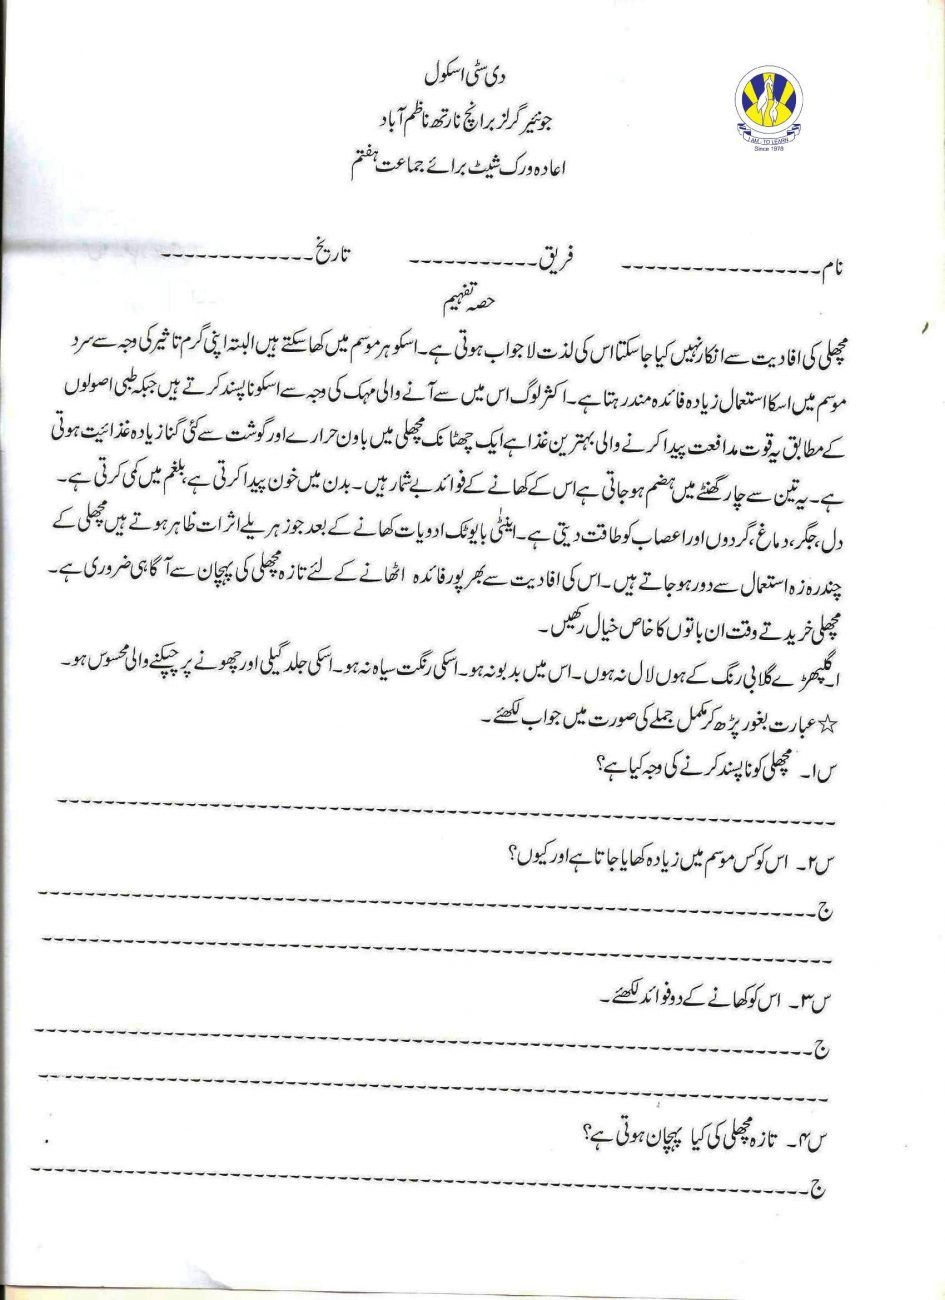 Urdu tafheem worksheets for grade 4 #401893 - Worksheets library   2nd grade  worksheets [ 1300 x 945 Pixel ]